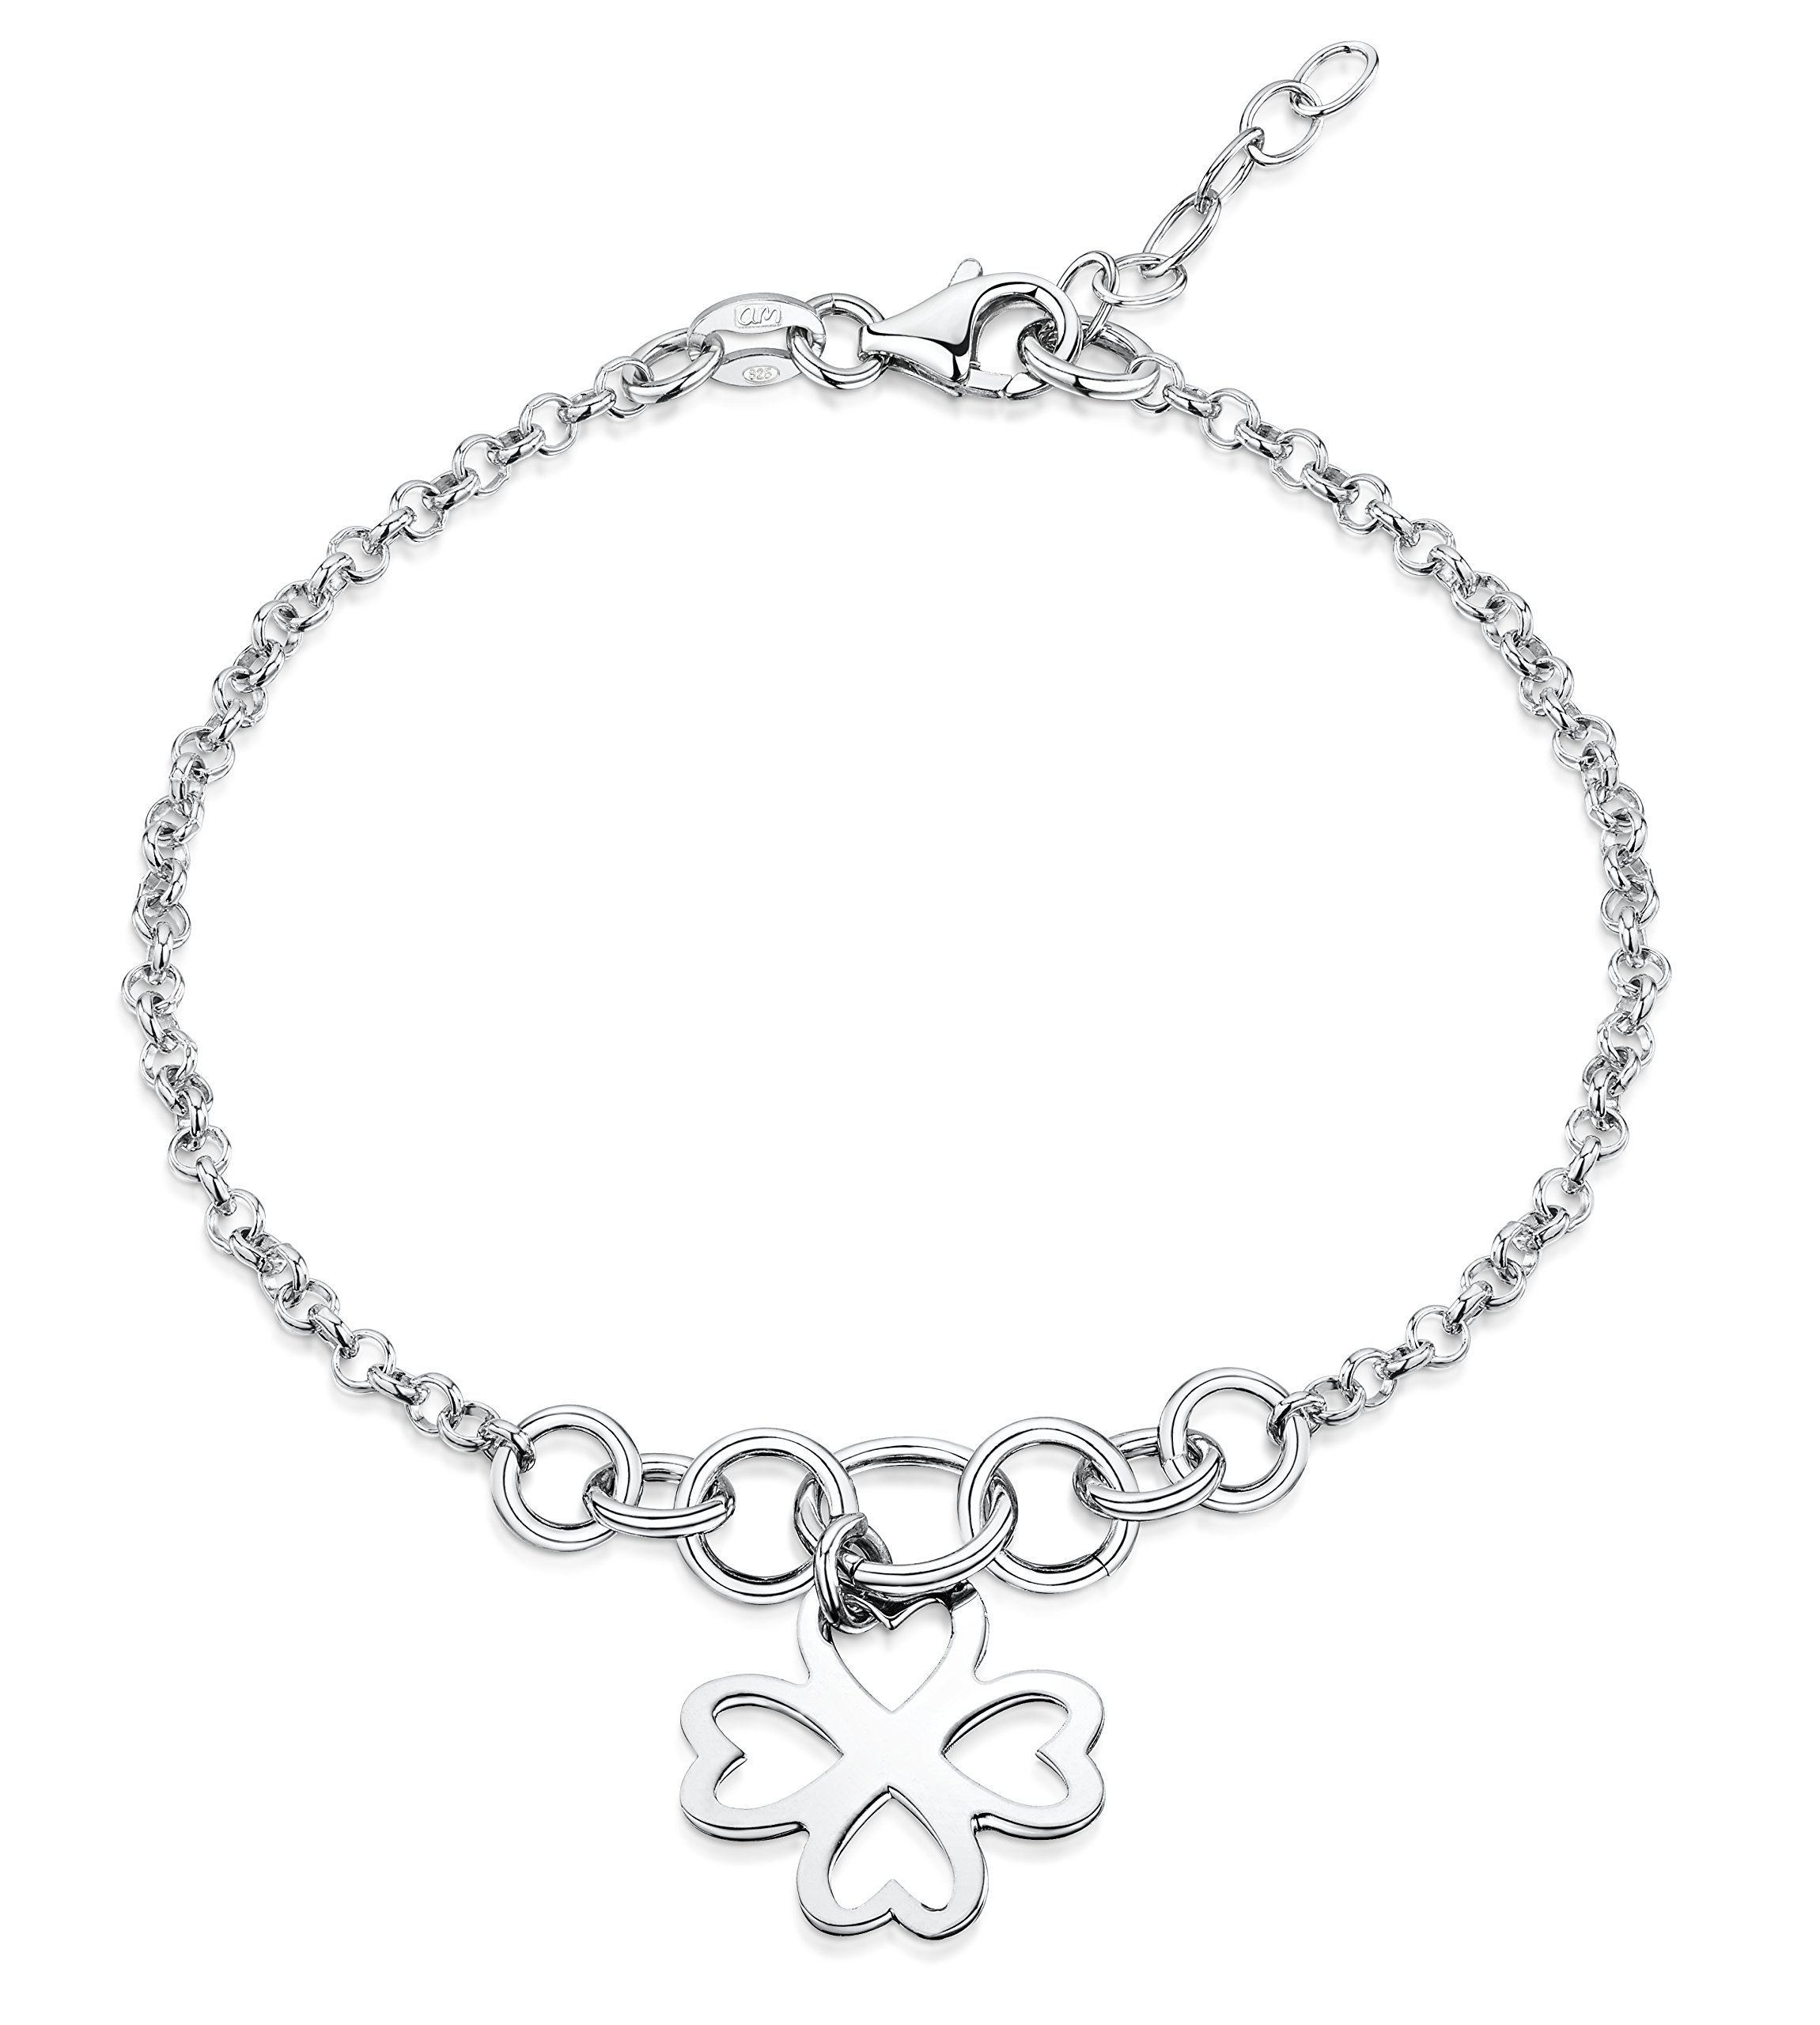 Amberta 925 Sterling Silver Adjustable Ankle Bracelet - 2.4 mm Rolo Chain Anklet with Large Hoops and Shamrock Flower Tag - 9'' to 10'' inch - Flexible Fit